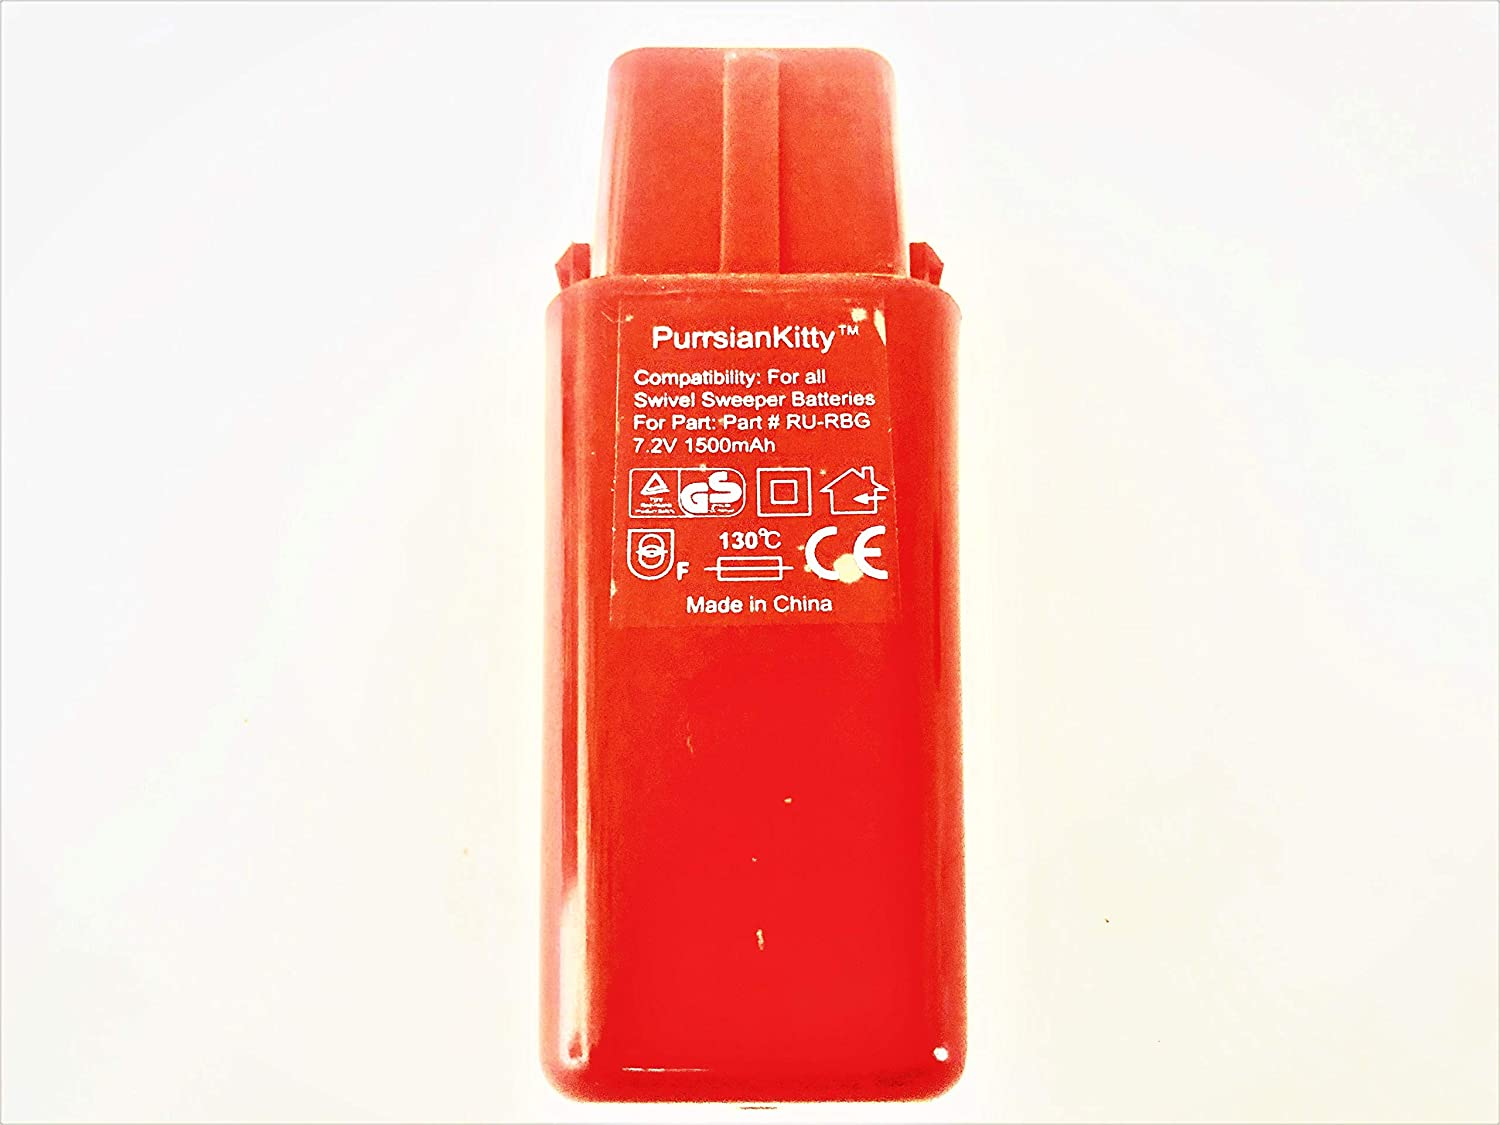 PurrsianKitty 7.2V 1500mAh Ni-MH Replacement Battery for Ontel Swivel Sweeper G1 G2 G3 G6 G8 Max - Replaces Part # RU-RBG - Red